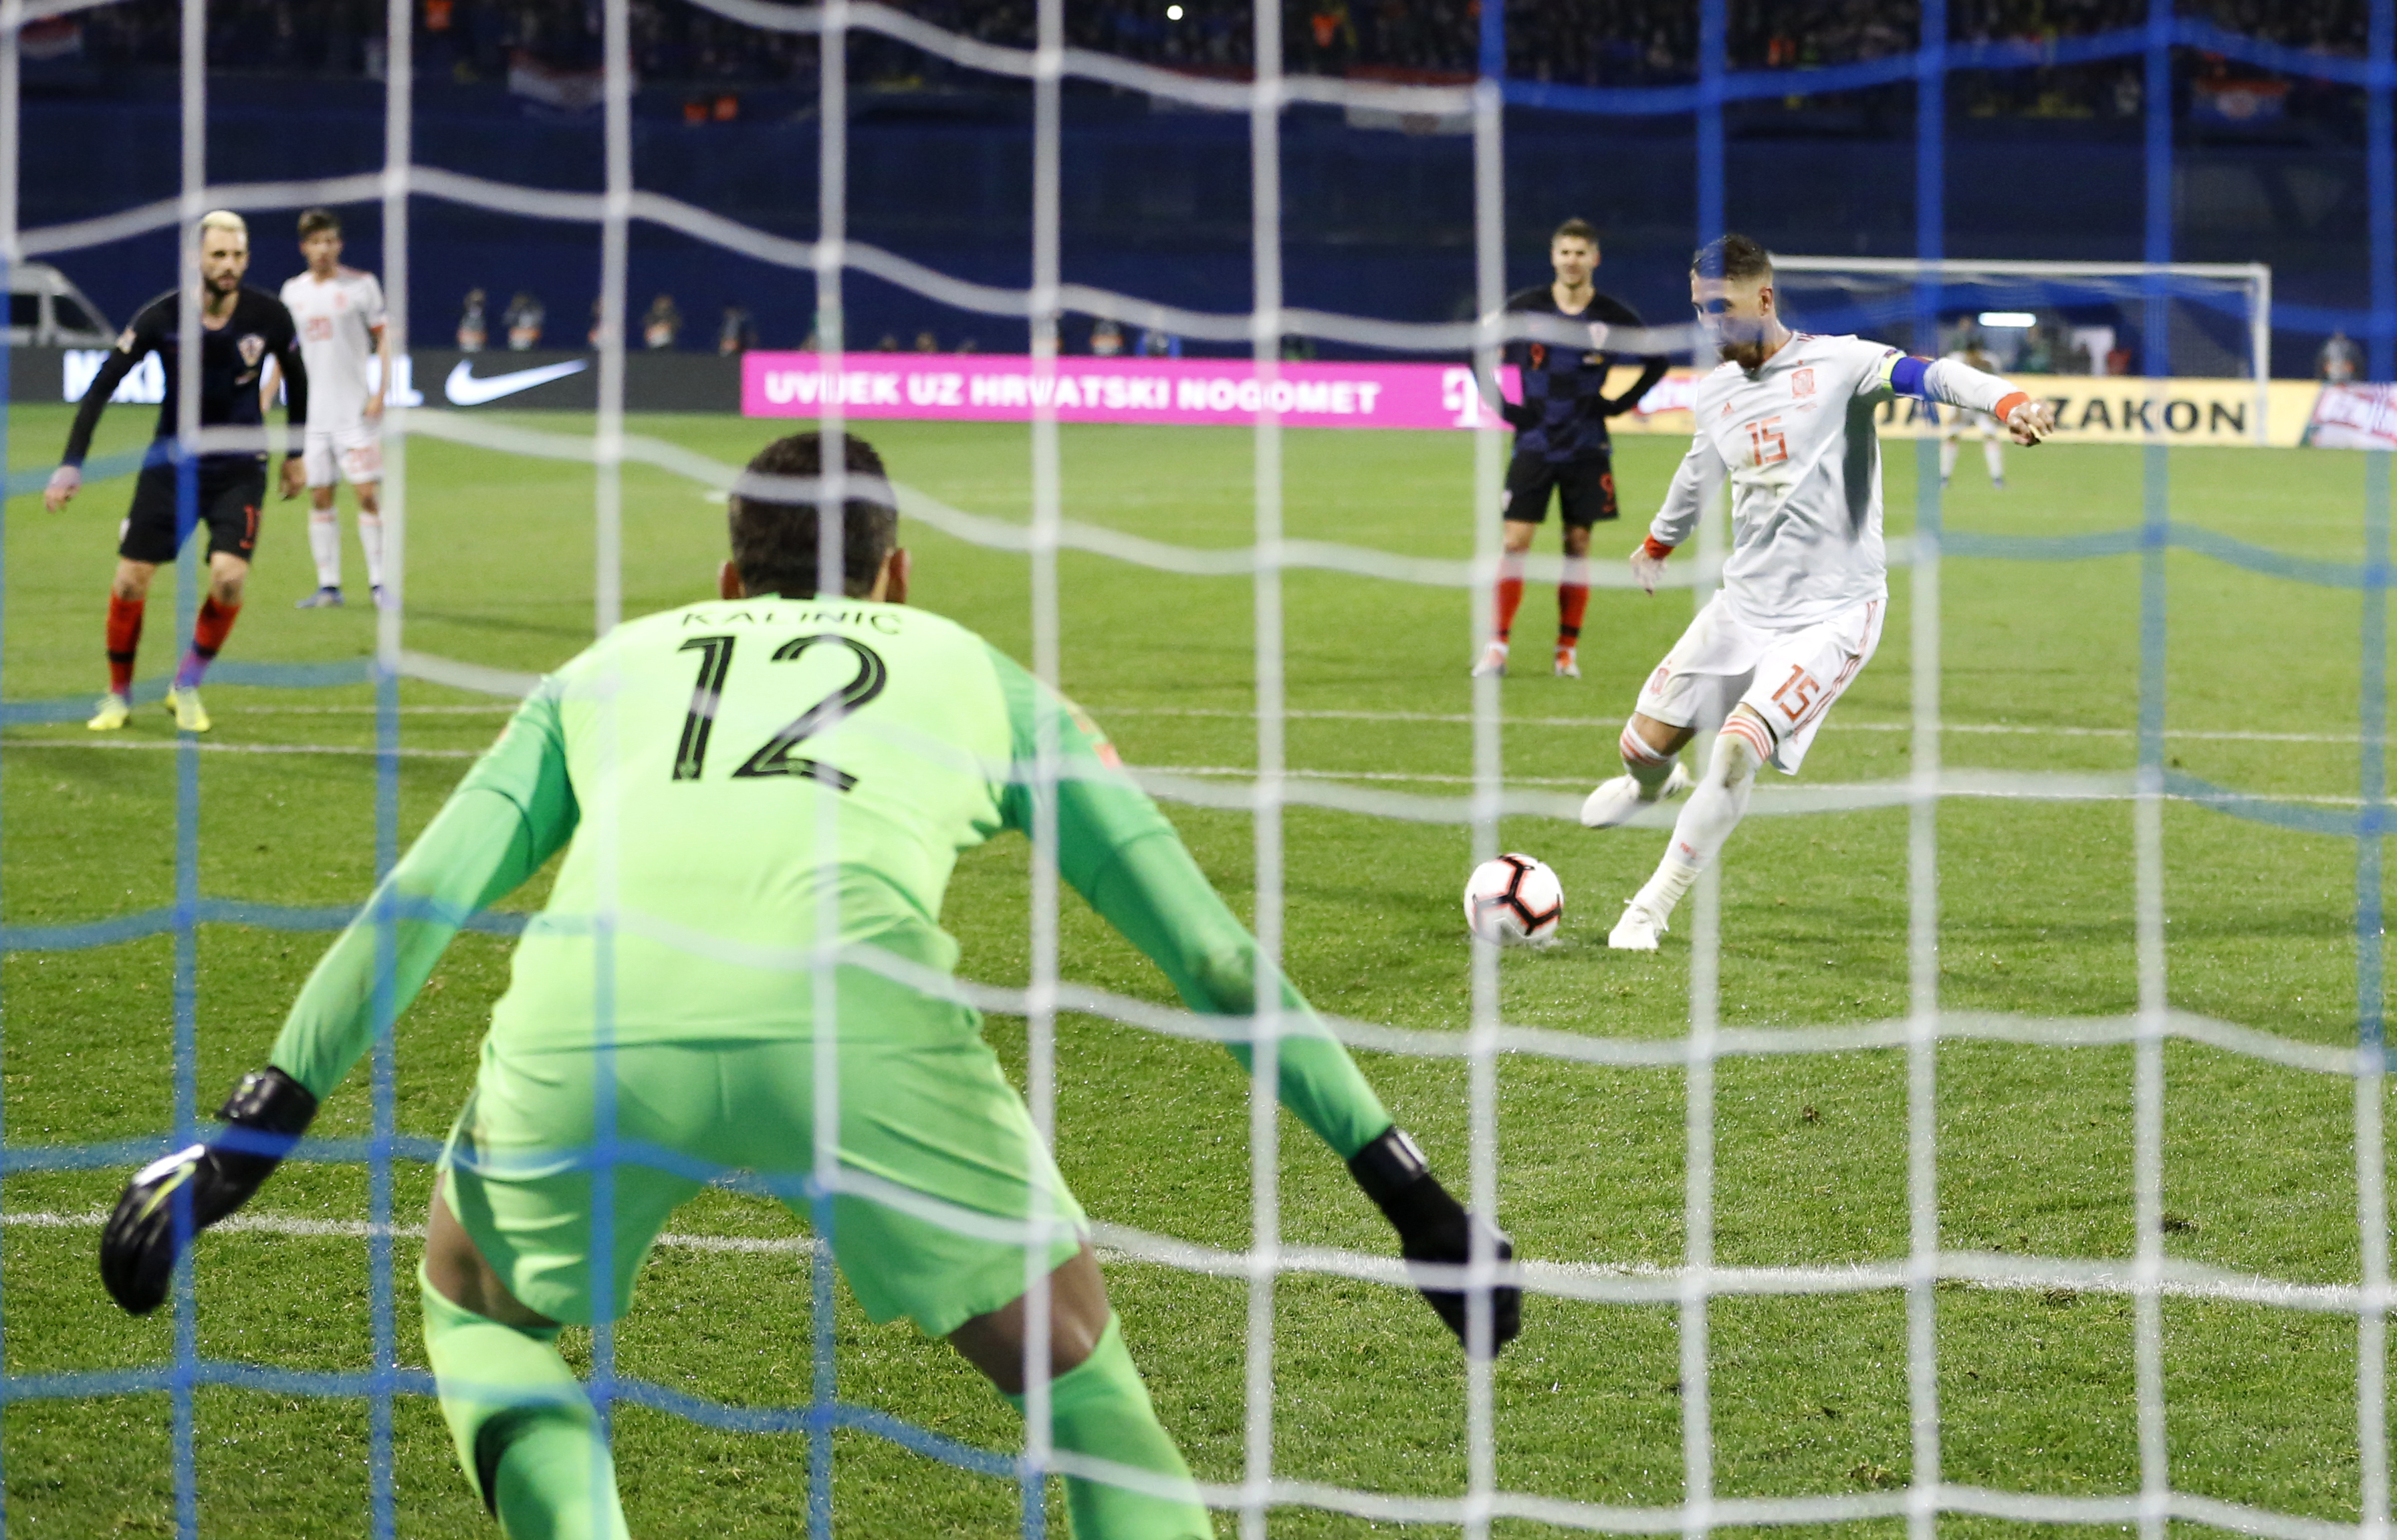 Rules panel aims to let goalkeepers move more at penalties